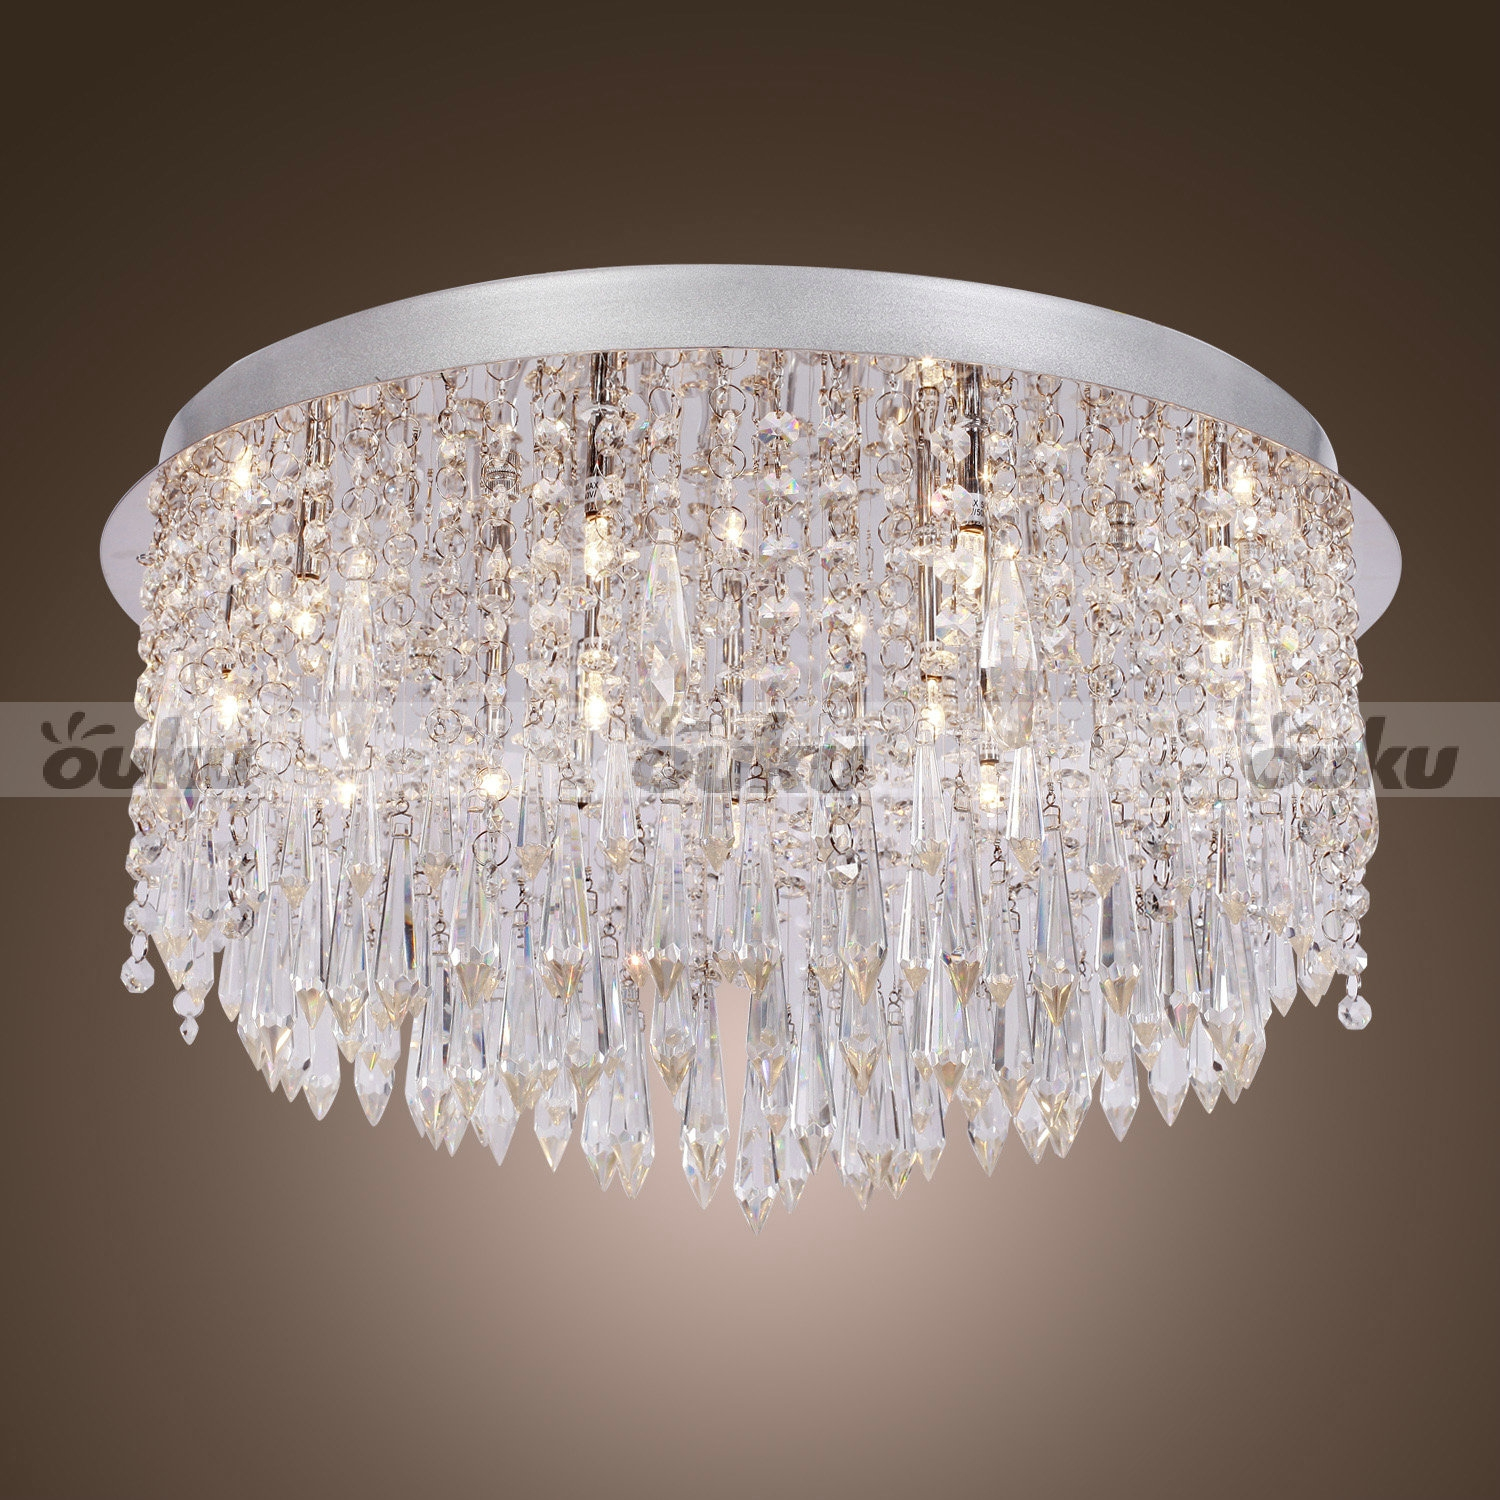 Modern Beaded Ceiling Chandelier Lighting Crystal Lamp Light In Flush Chandelier (#8 of 12)